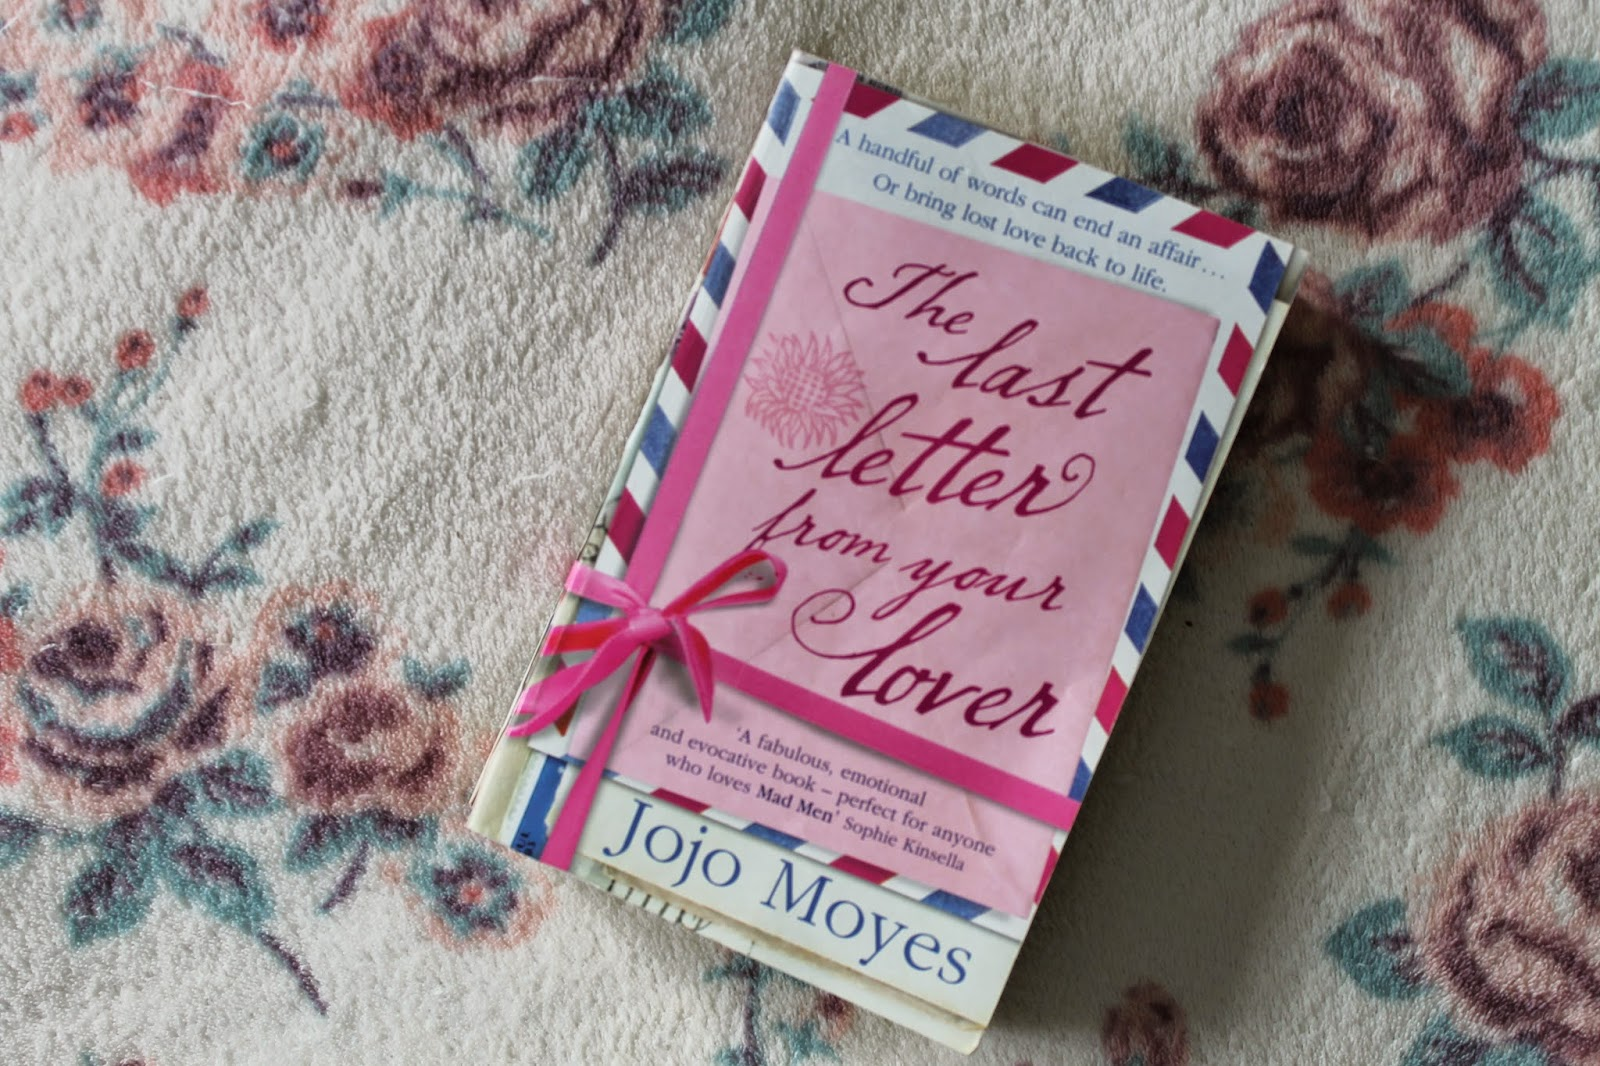 Review: The Last Letter From Your Lover by Jojo Moyes